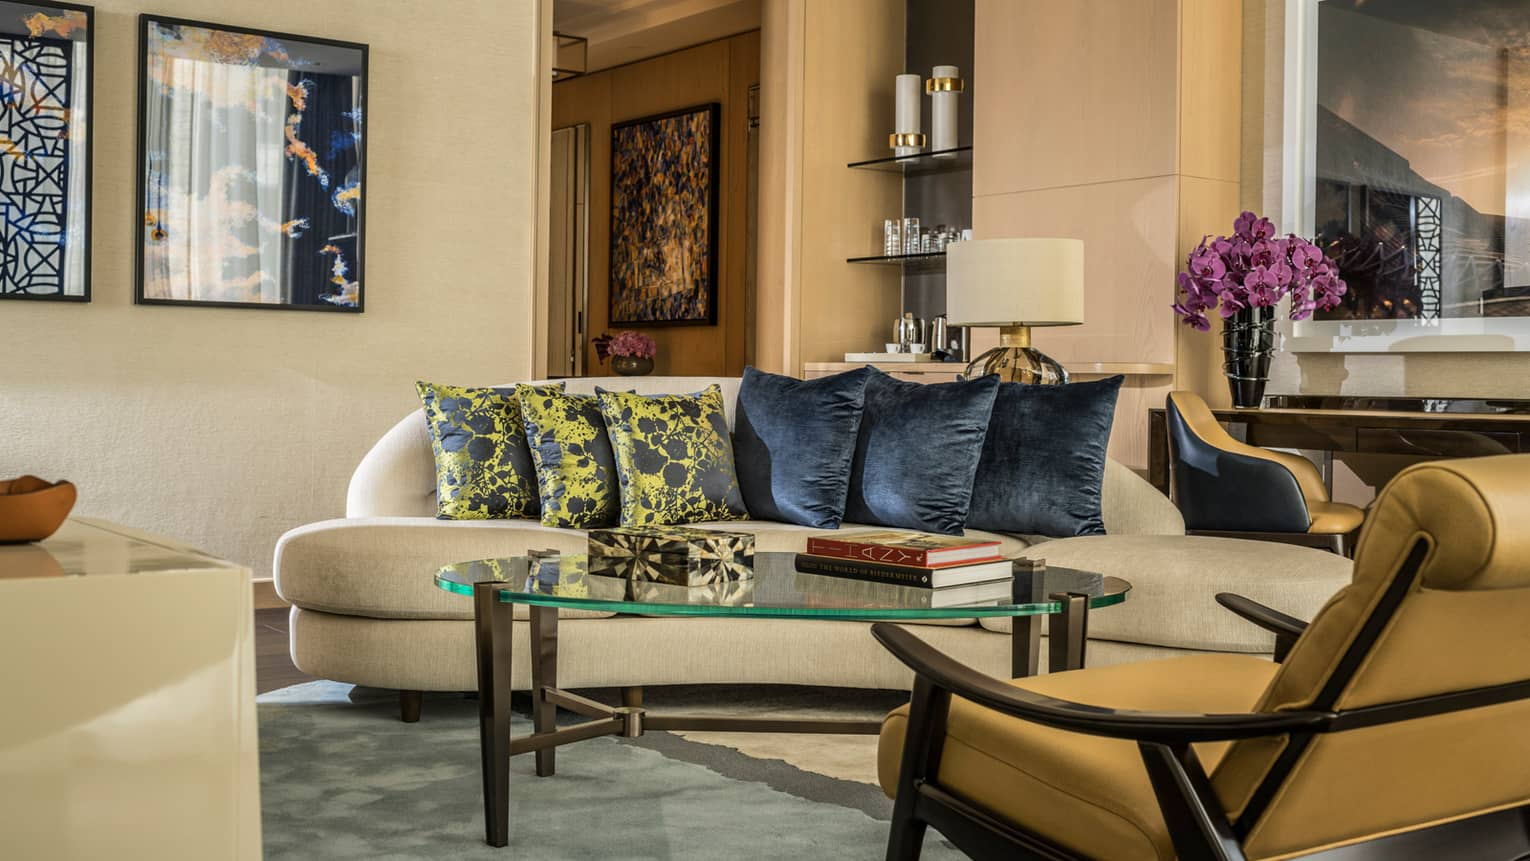 Four Seasons Executive Suite leather armchair, glass coffee table with books, sofa with six black and yellow accent pillows